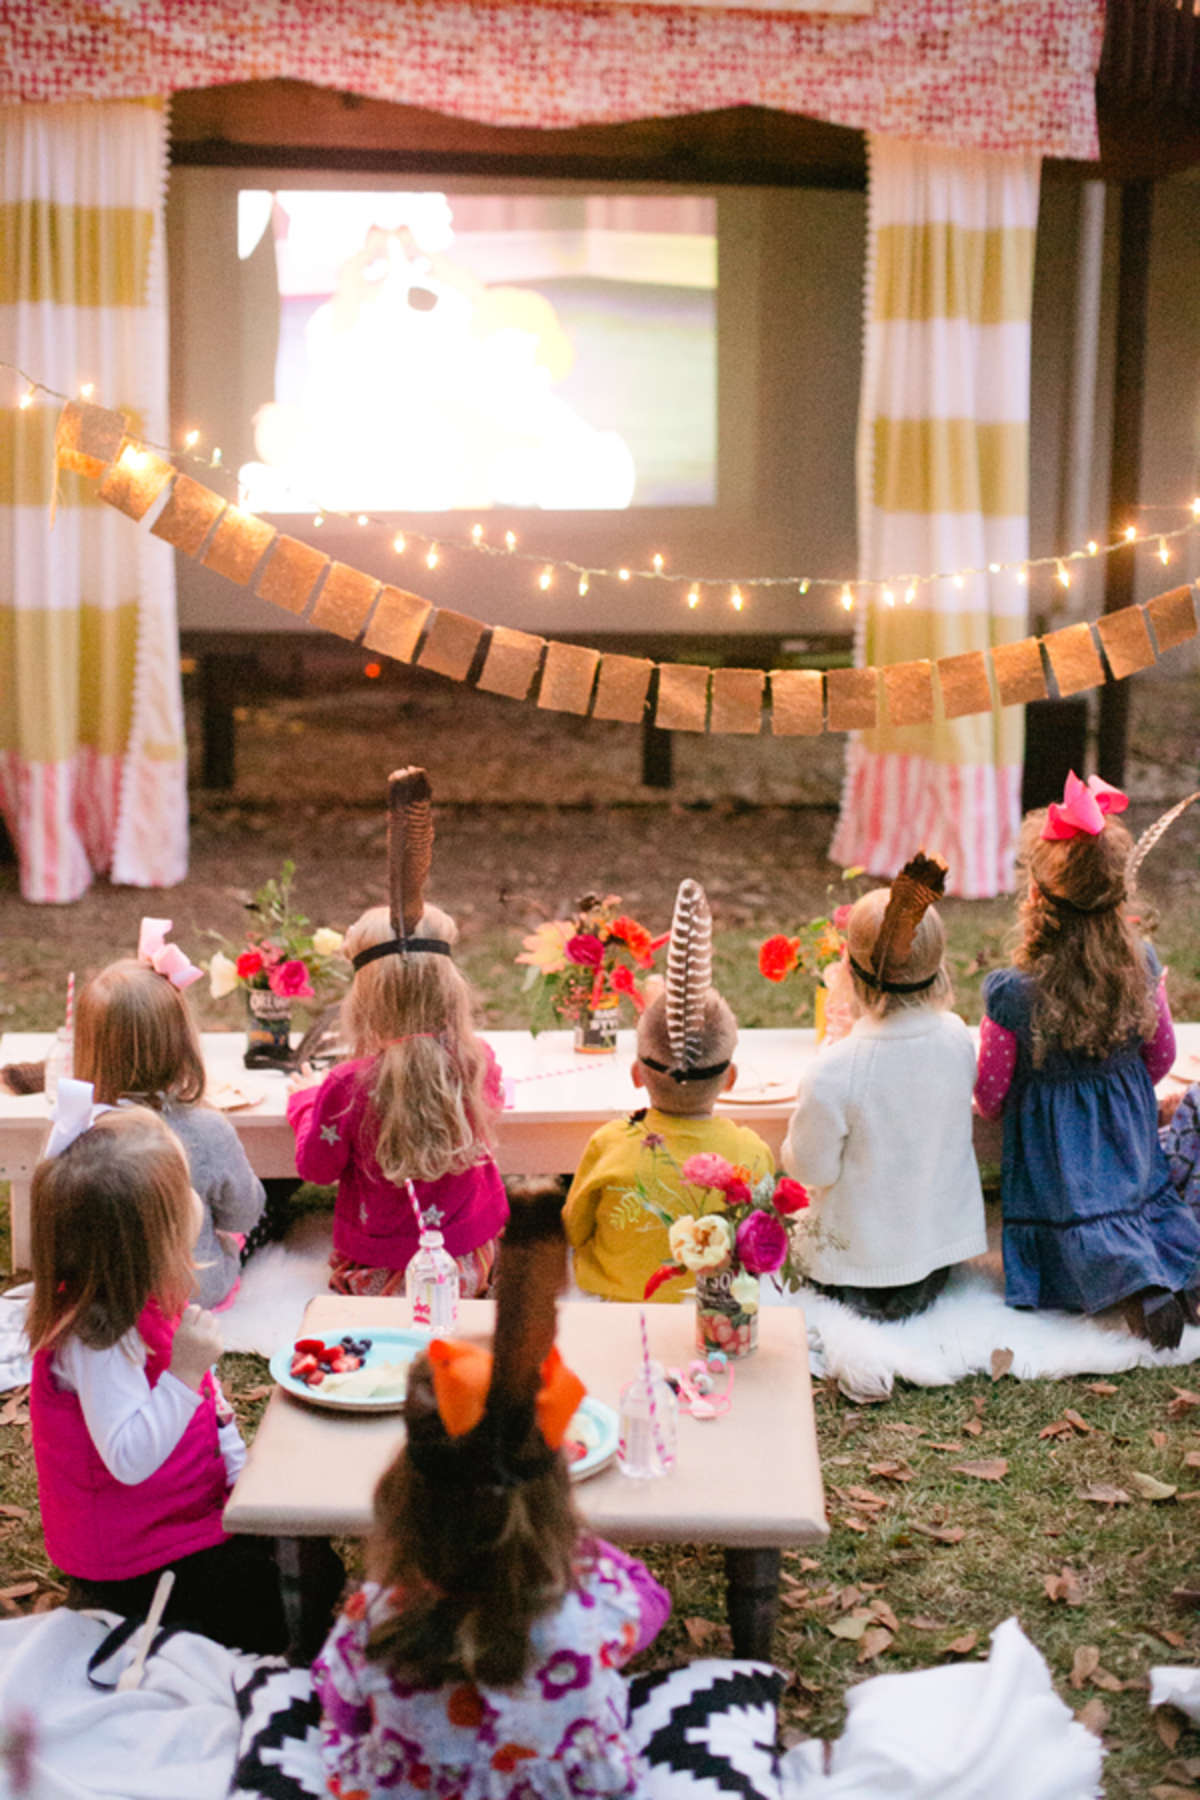 Design Outdoor Party Ideas 15 awesome outdoor birthday party ideas for kids